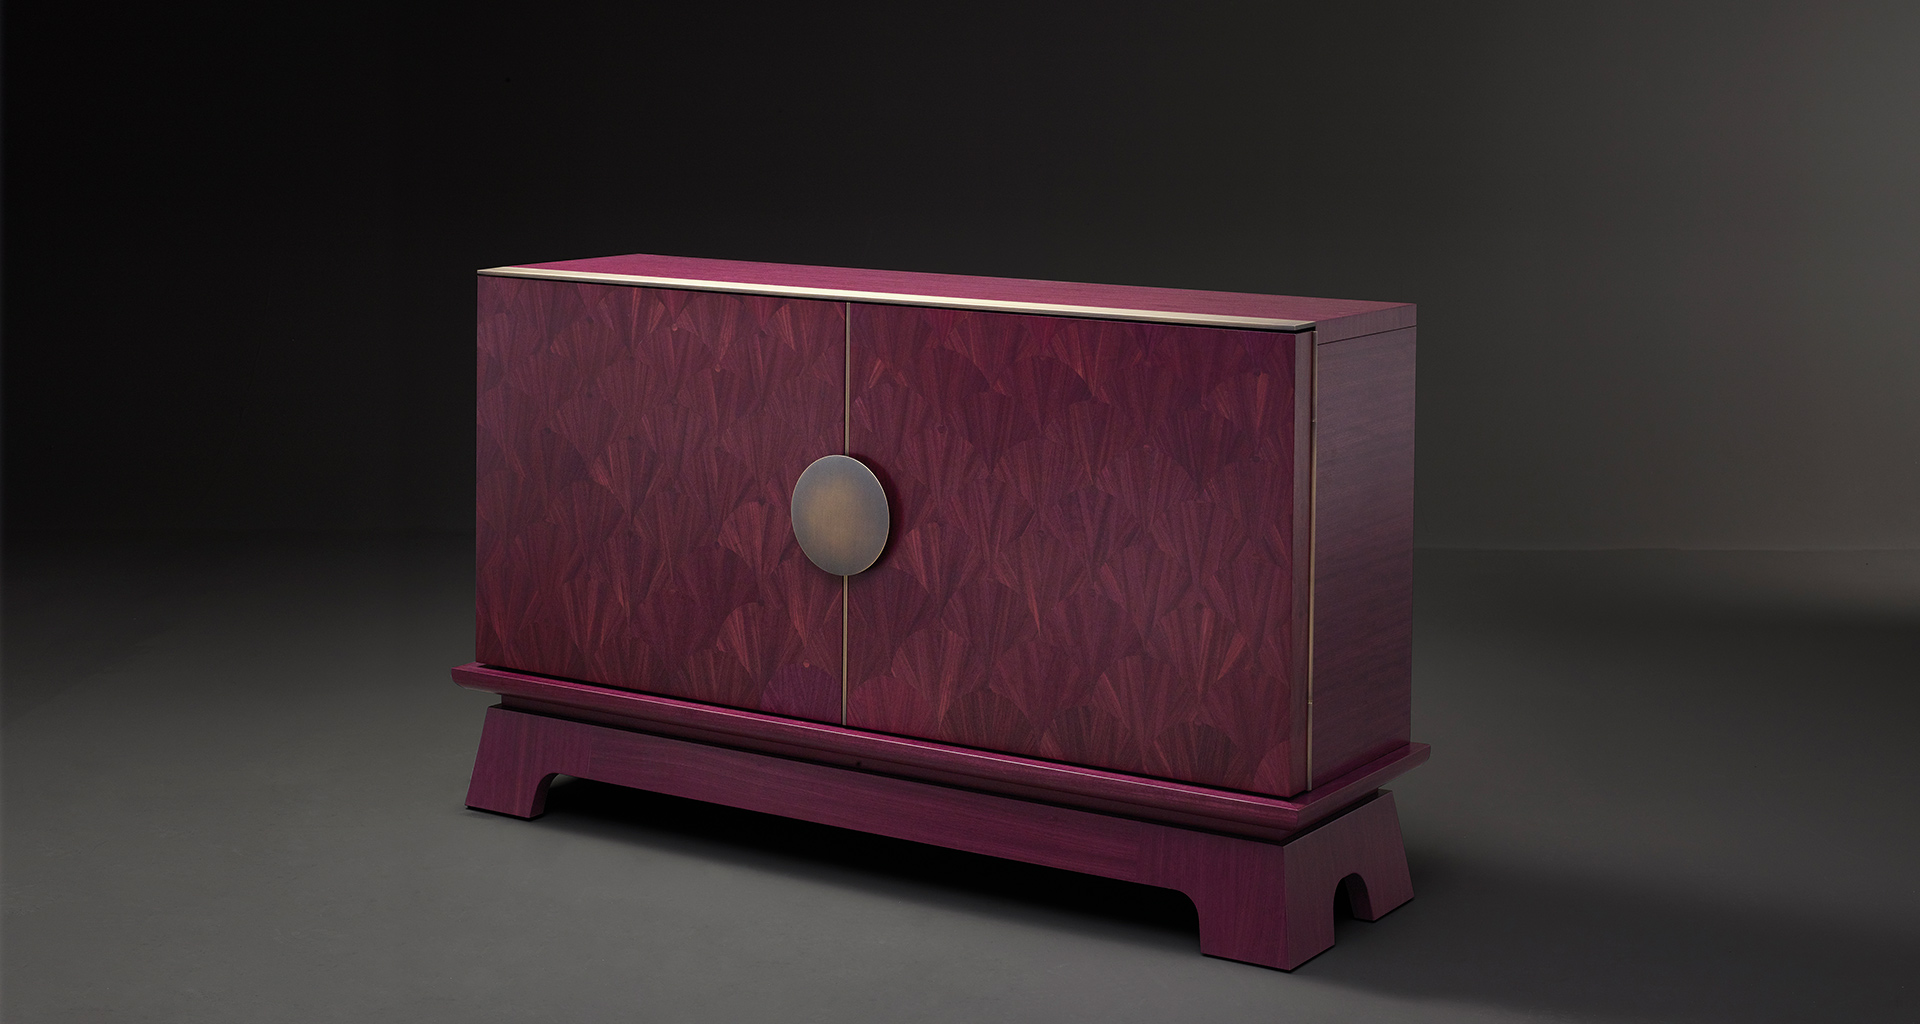 La Belle Aurore cabinet that belongs to Amaranthine Tales, the 2017 Promemoria collection inspired by the amaranth wood and presented during the Milan Design Week | Promemoria